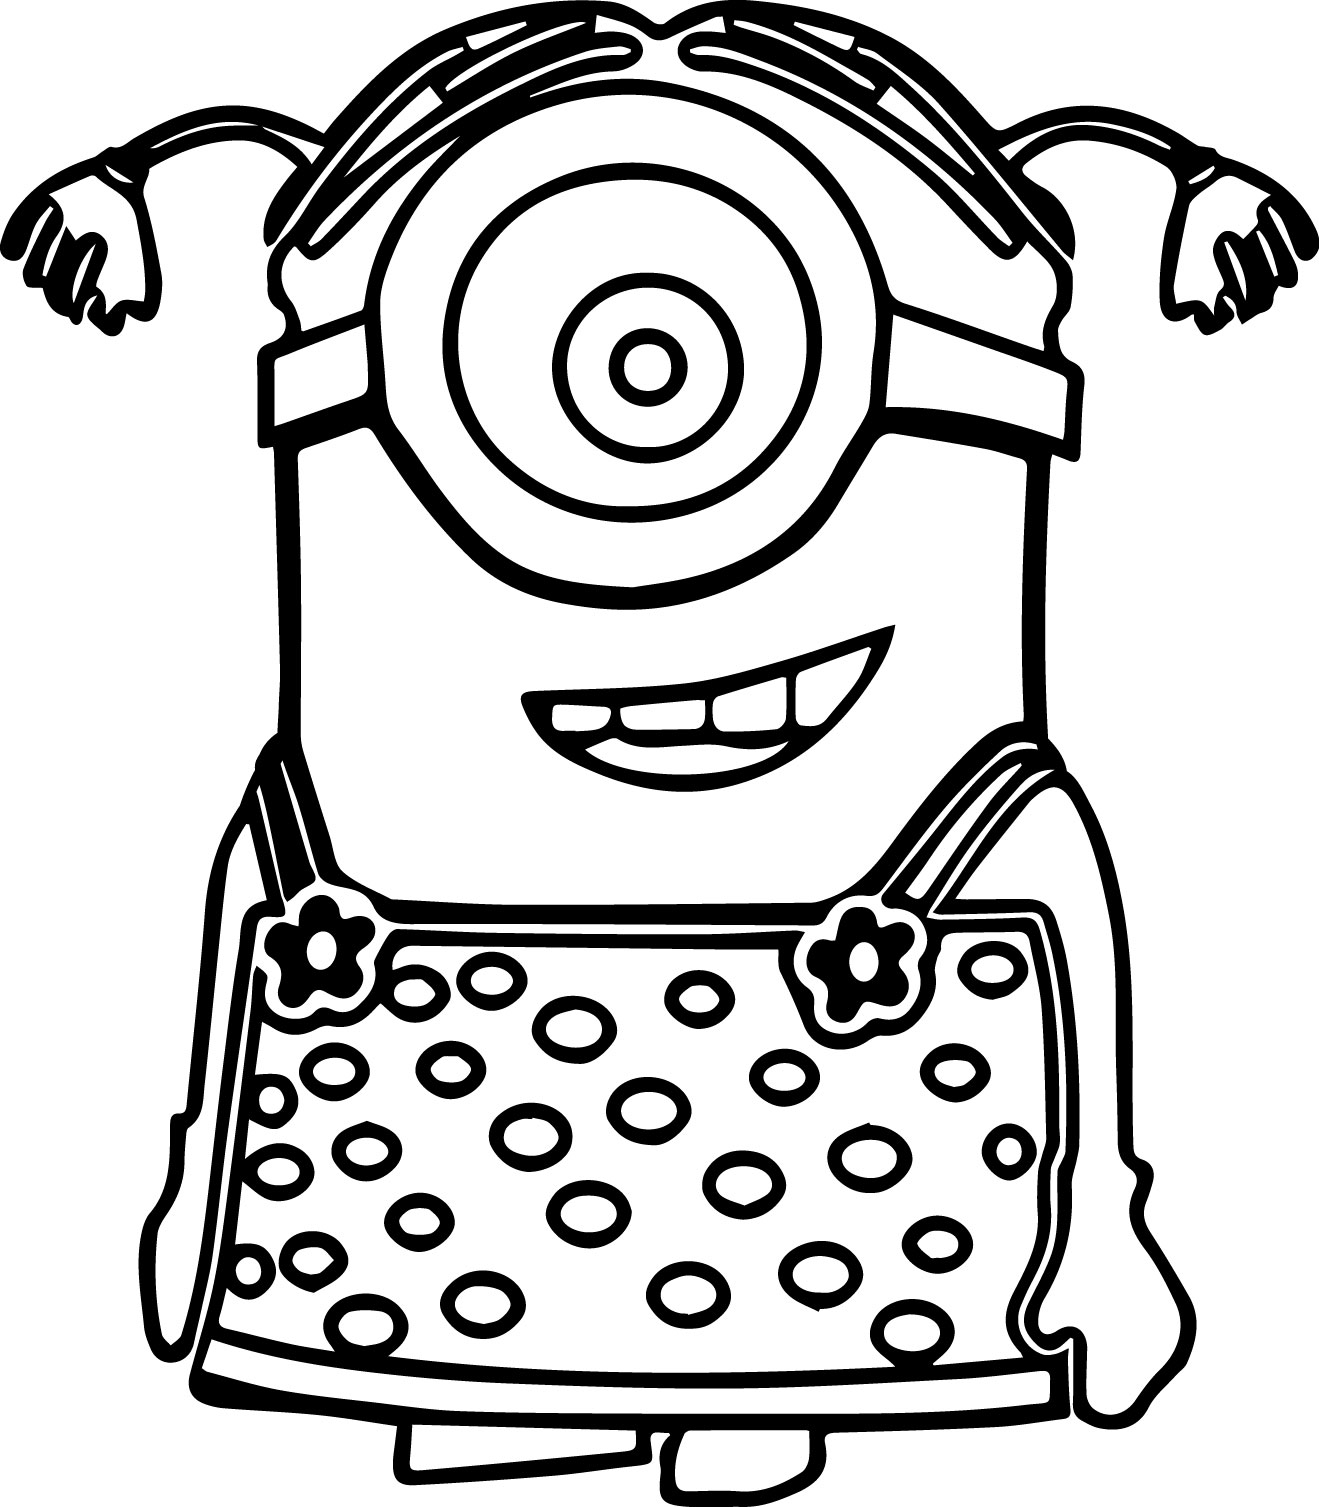 minion coloring free coloring pages printable pictures to color kids minion coloring